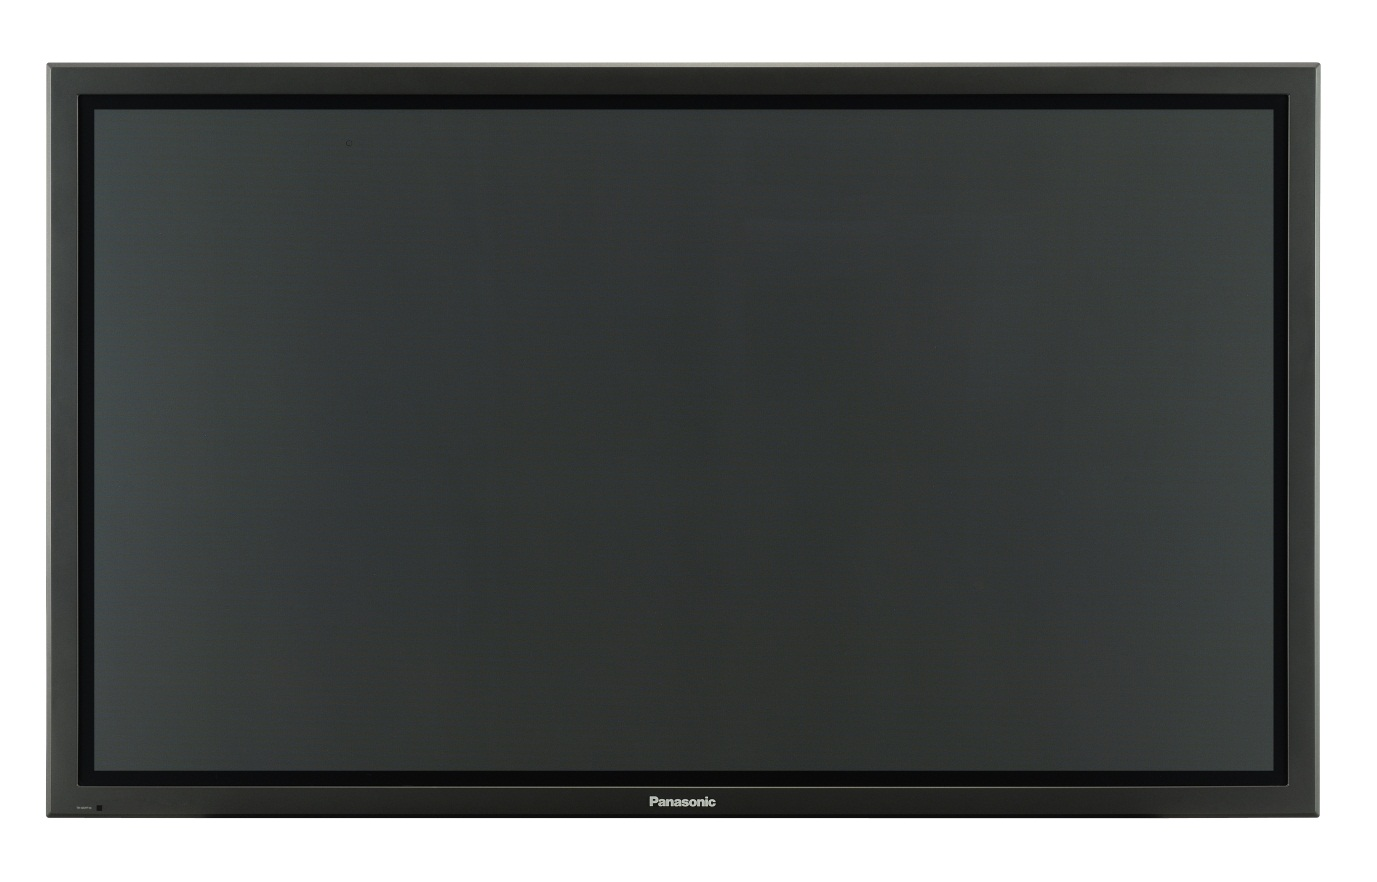 panasonic 50 inch plasma screen with k stand innovation productions innovation productions. Black Bedroom Furniture Sets. Home Design Ideas